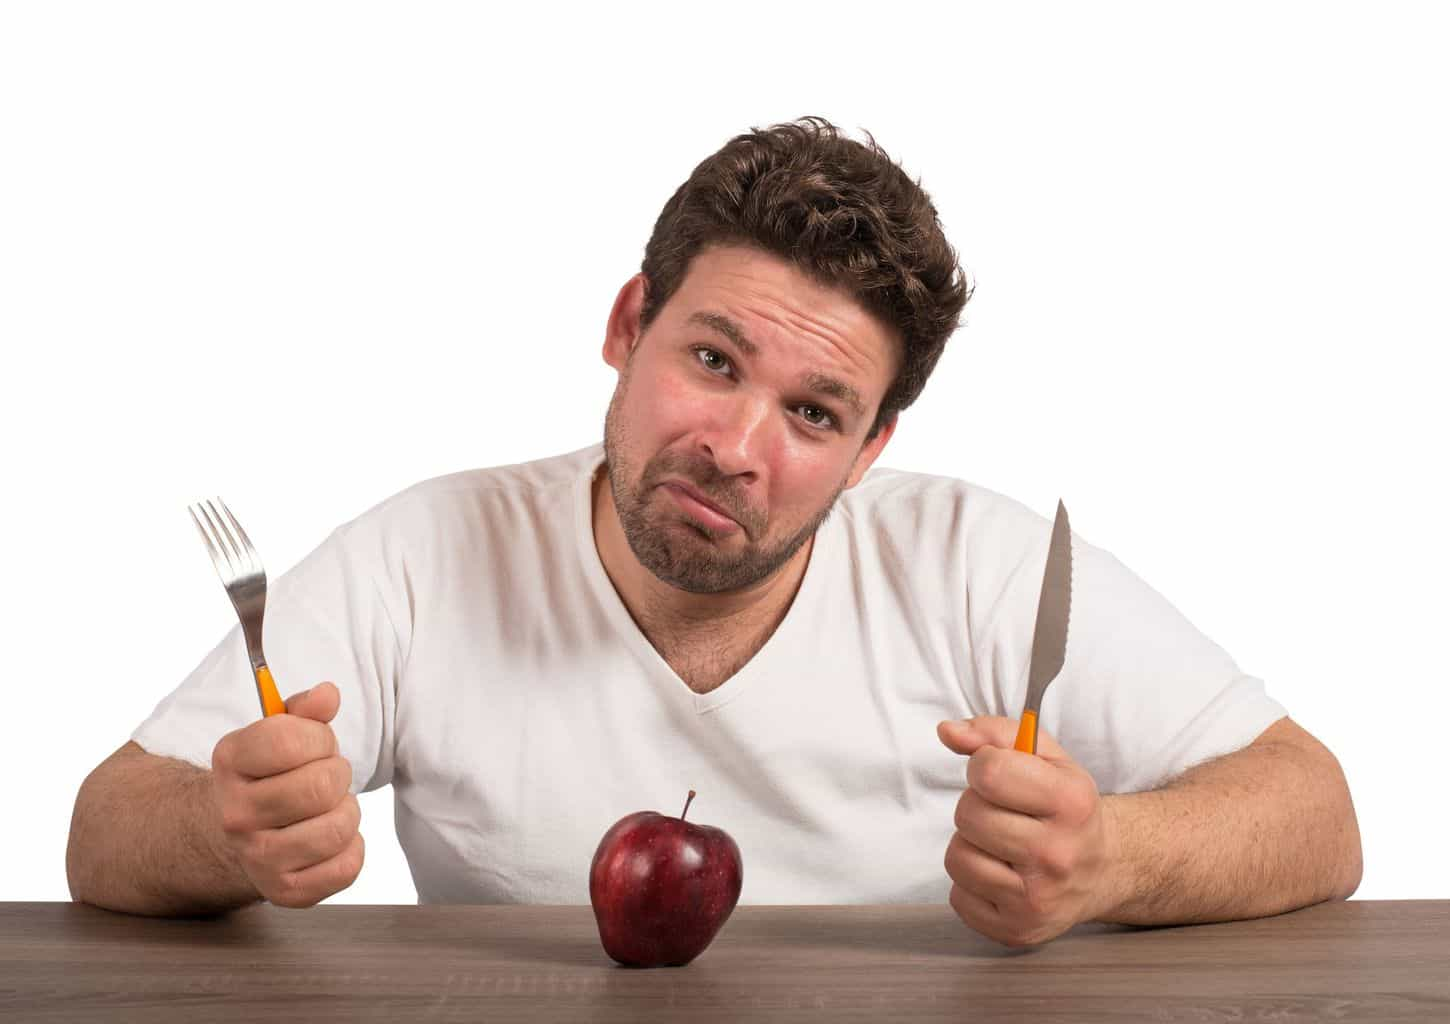 Skipping meals lowers testosterone